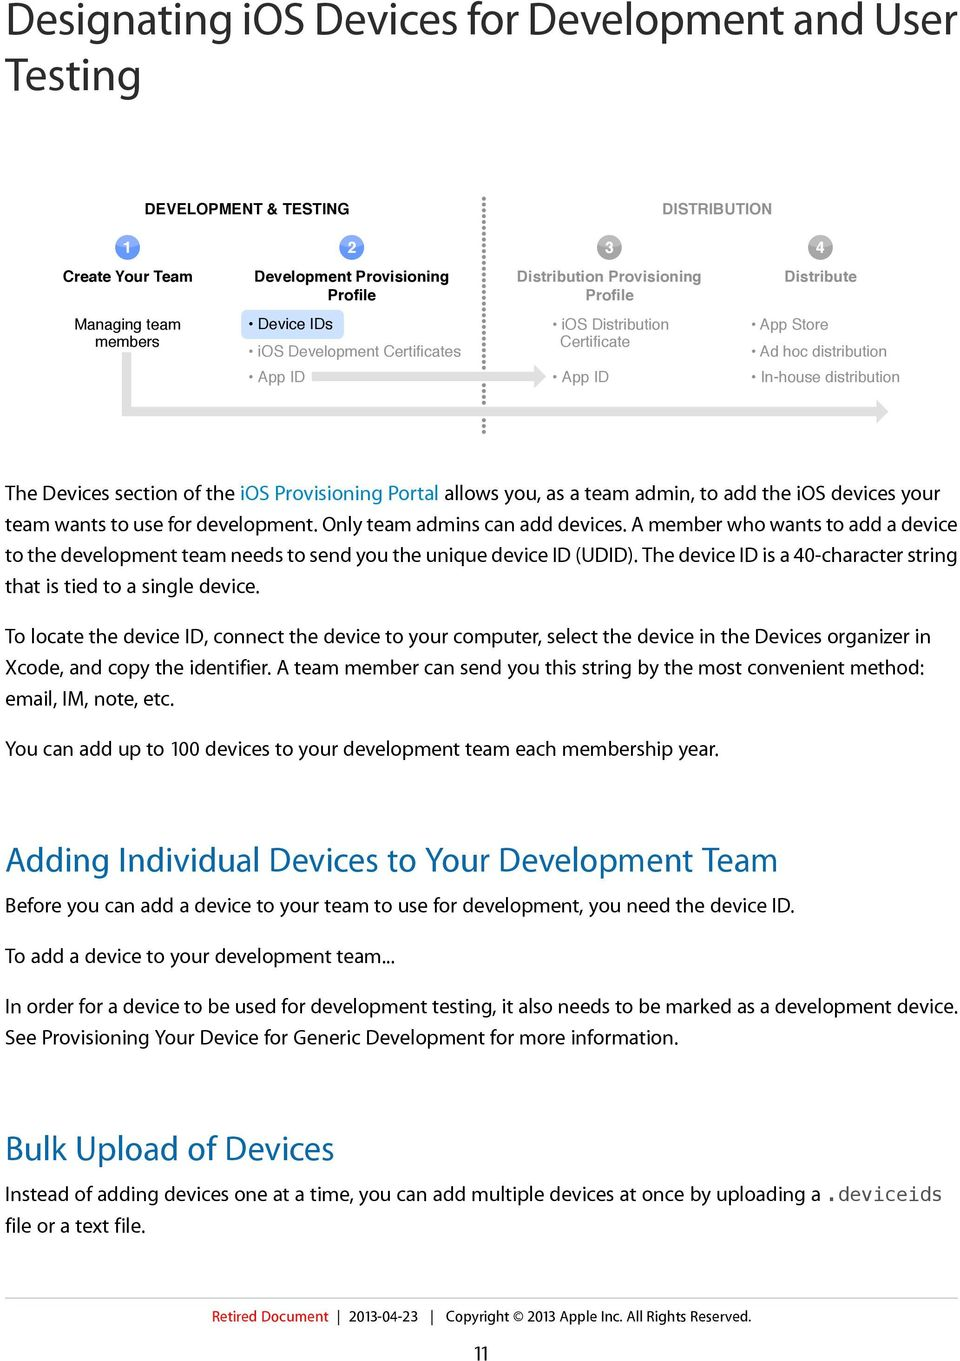 team admin, to add the ios devices your team wants to use for development. Only team admins can add devices.